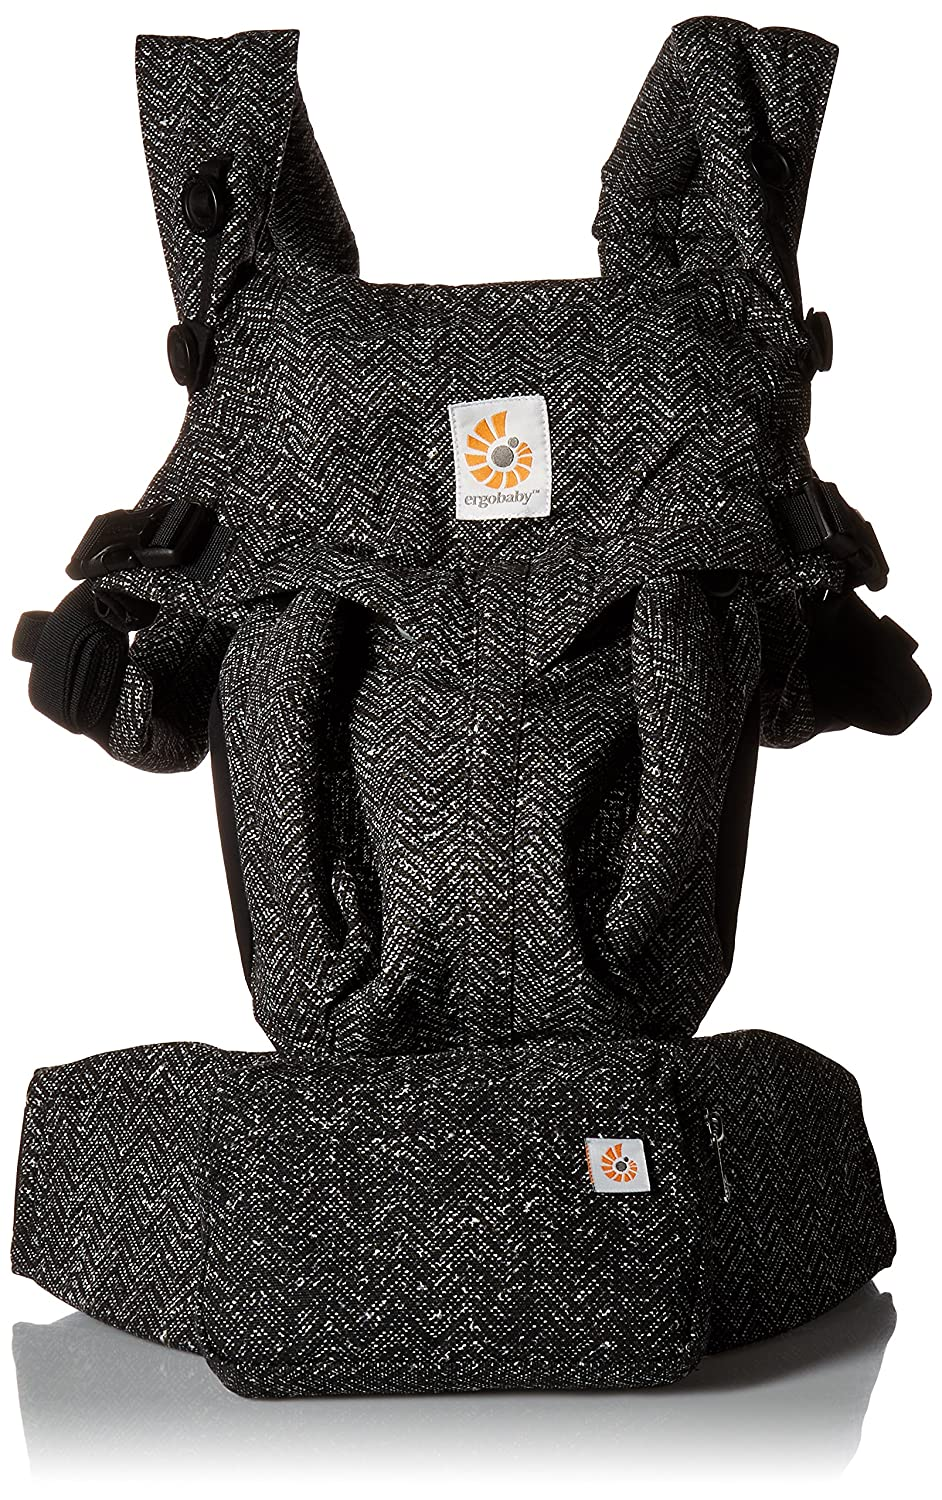 Ergobaby OMNI 360 All-in-One Ergonomic Baby Carrier, All Carry Positions, Newborn to Toddler, Herringbone BCS360HERR